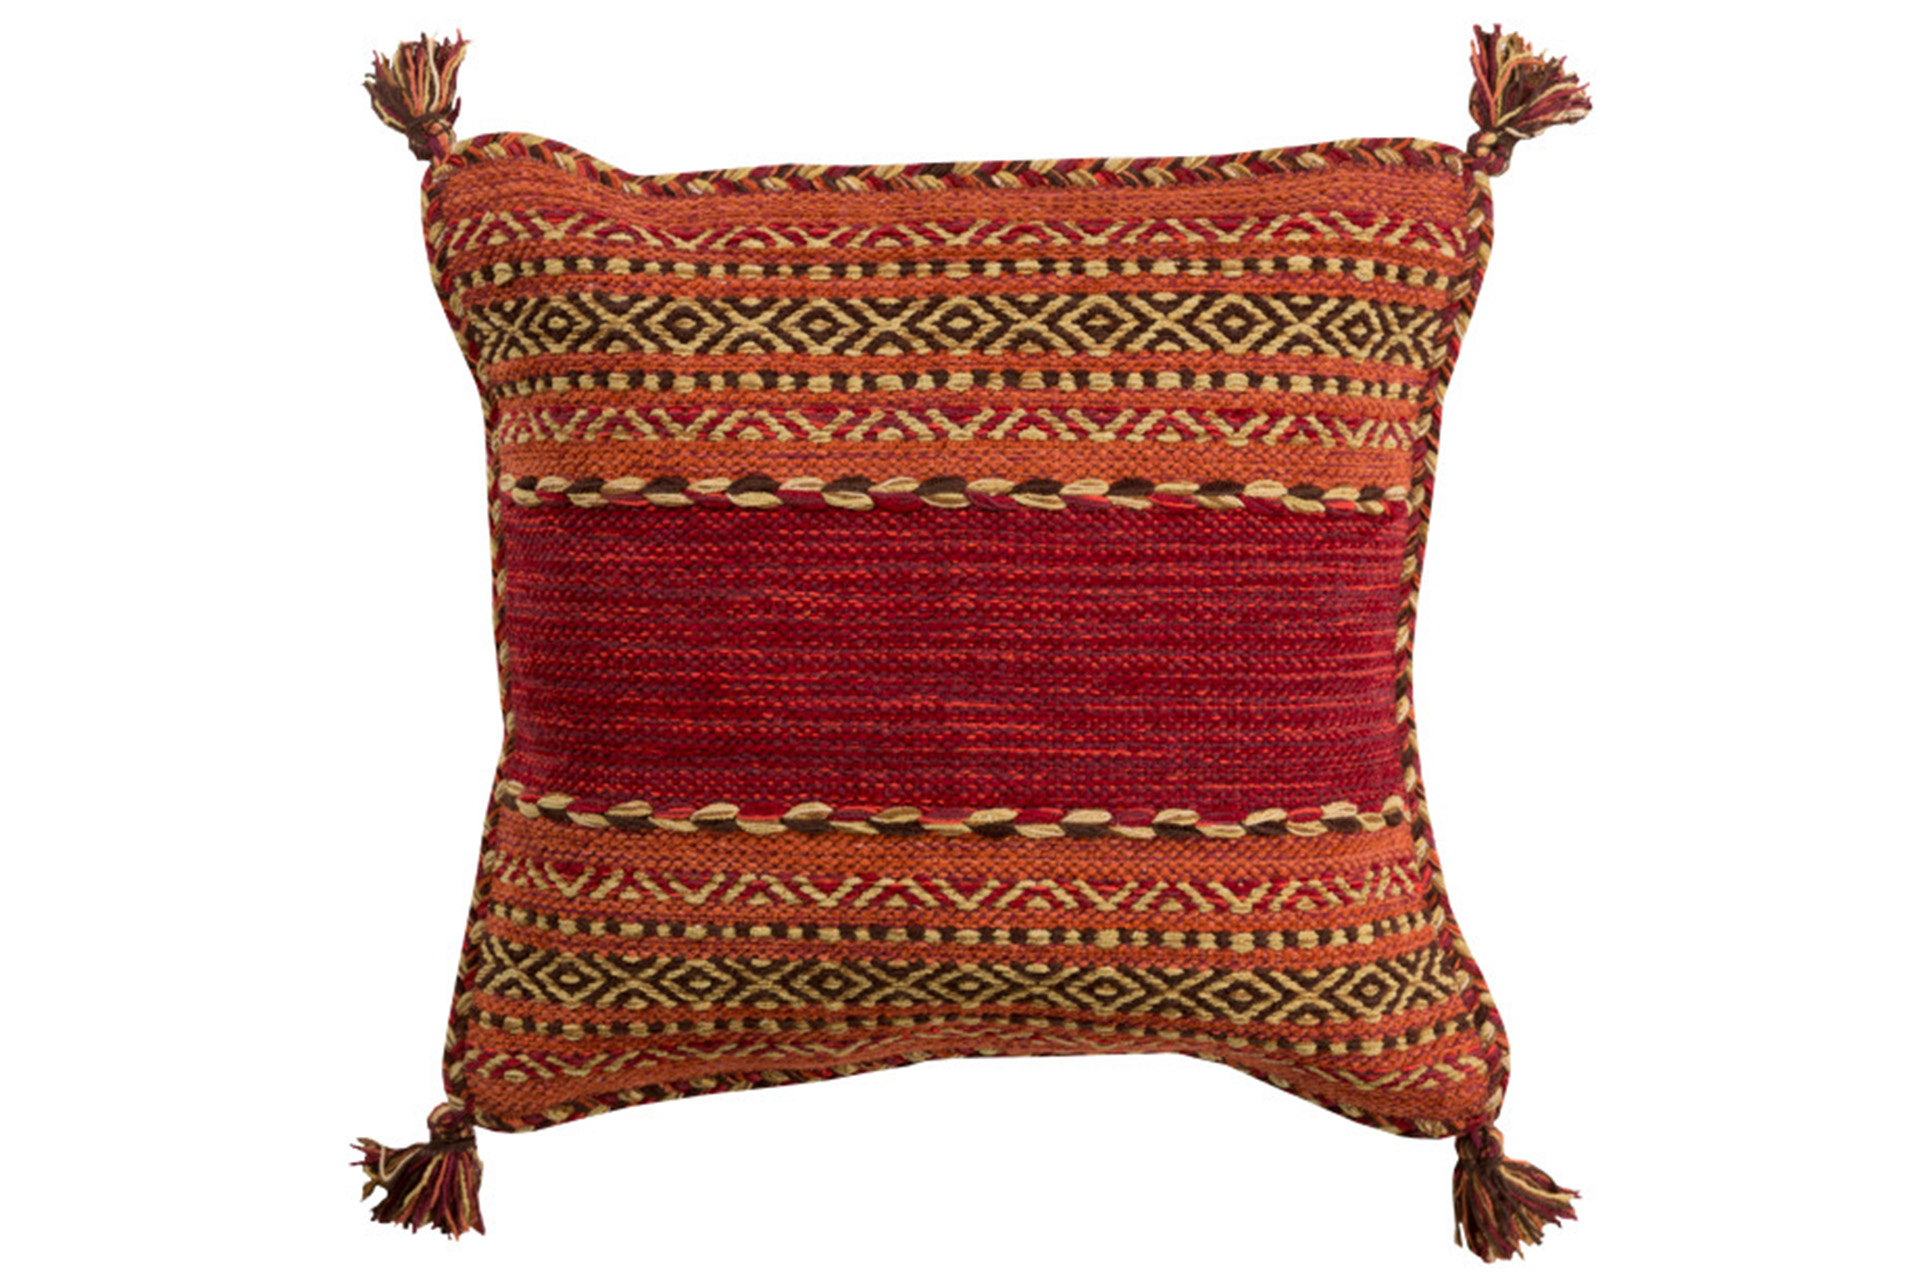 Accent Pillow Orange Tassels 18X18 (Qty: 1) Has Been Successfully Added To  Your Cart.